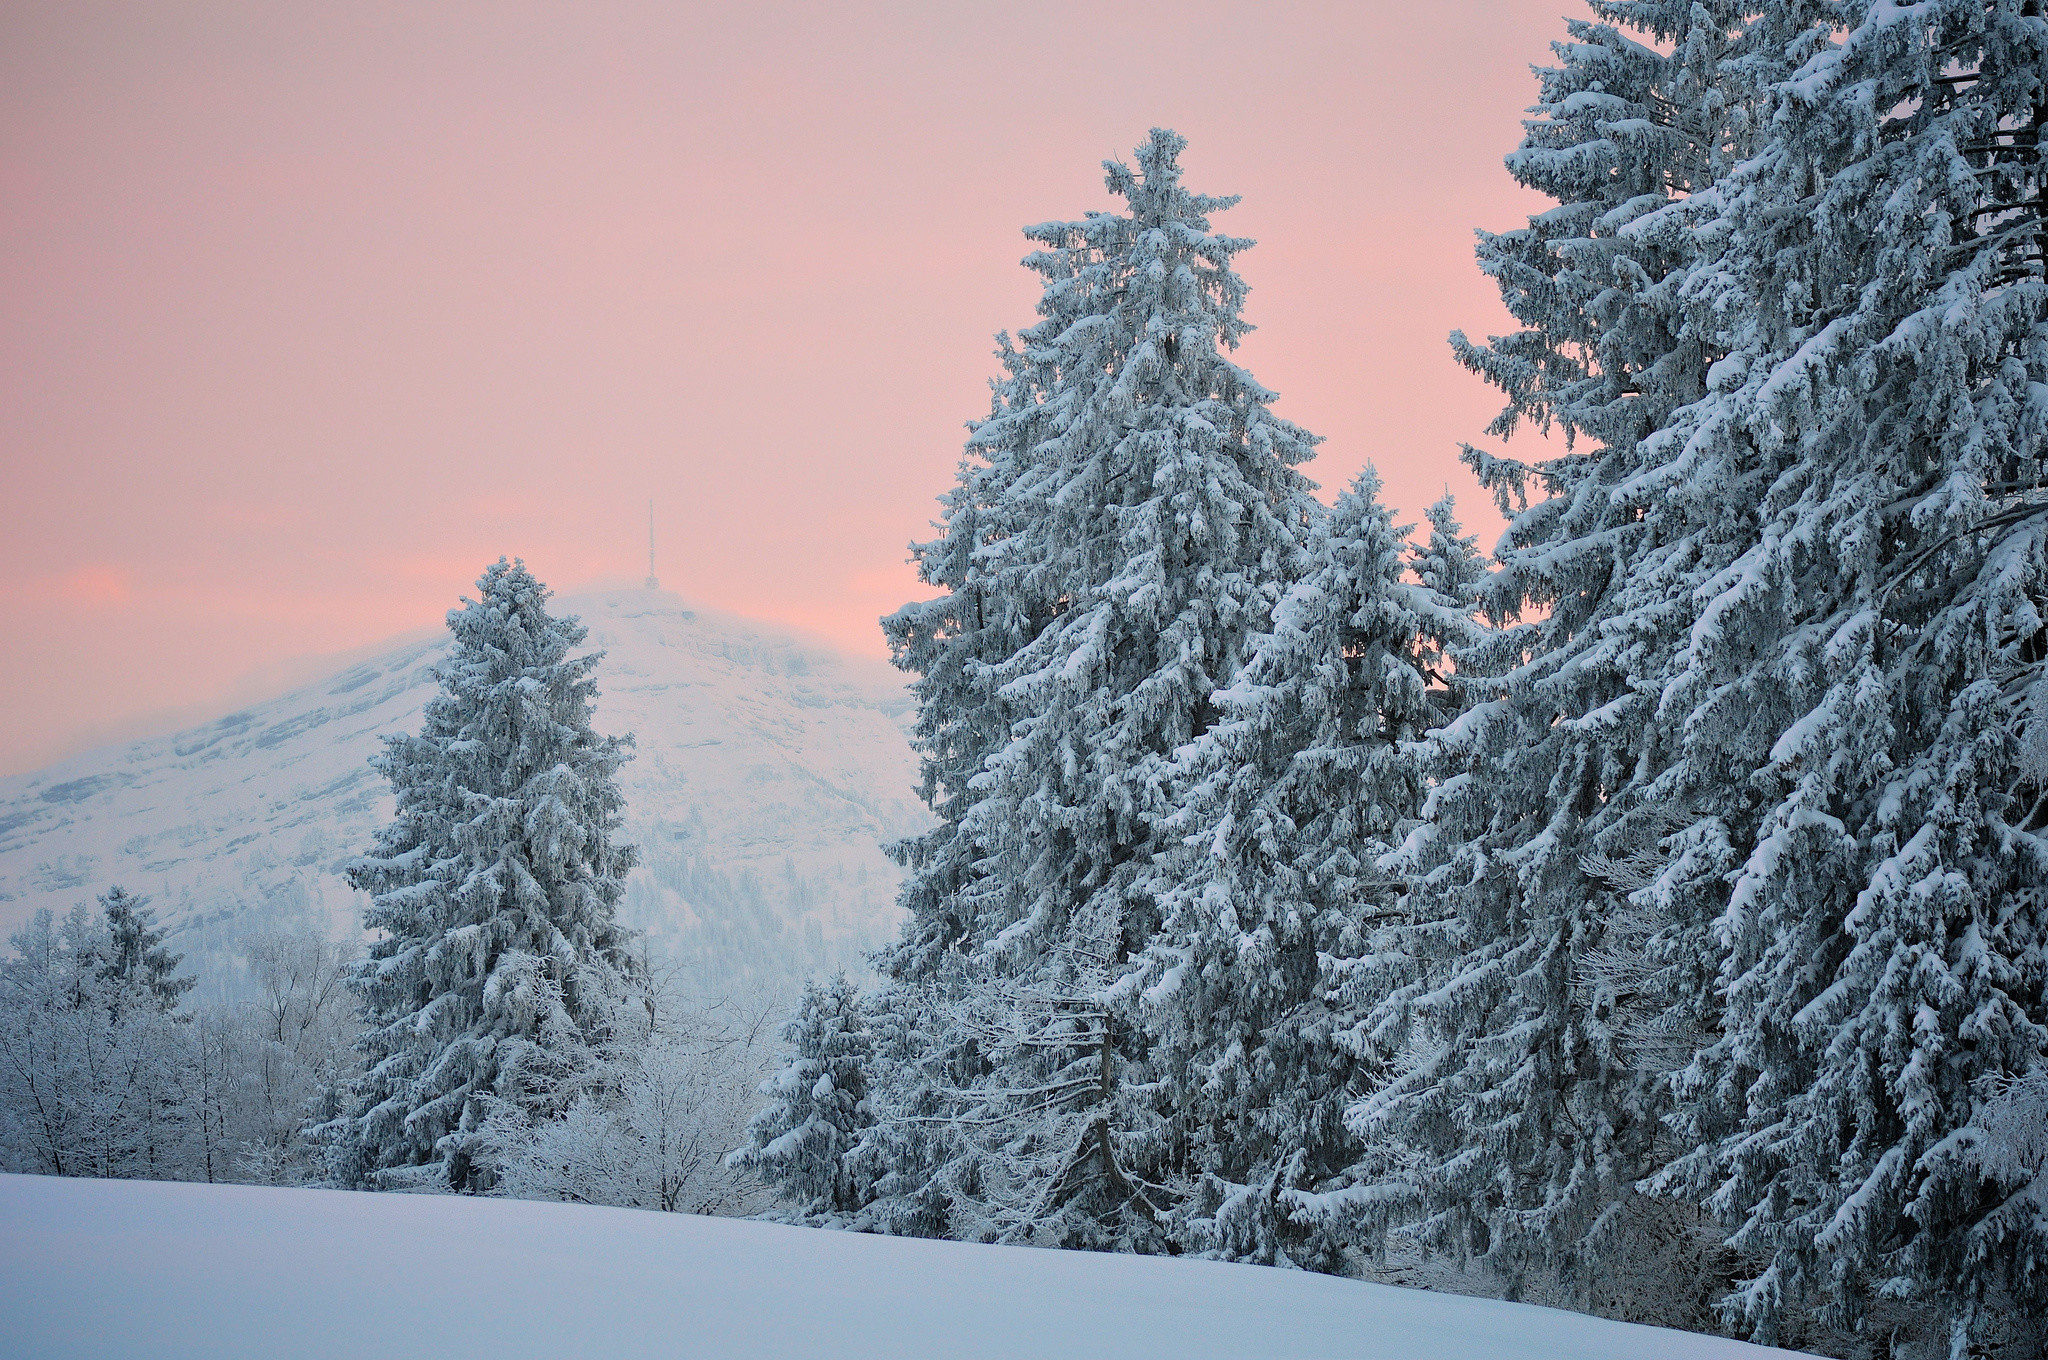 Res: 2048x1360, Blue Spruce Winter Snow Desktop Wallpaper Uploaded by DesktopWalls